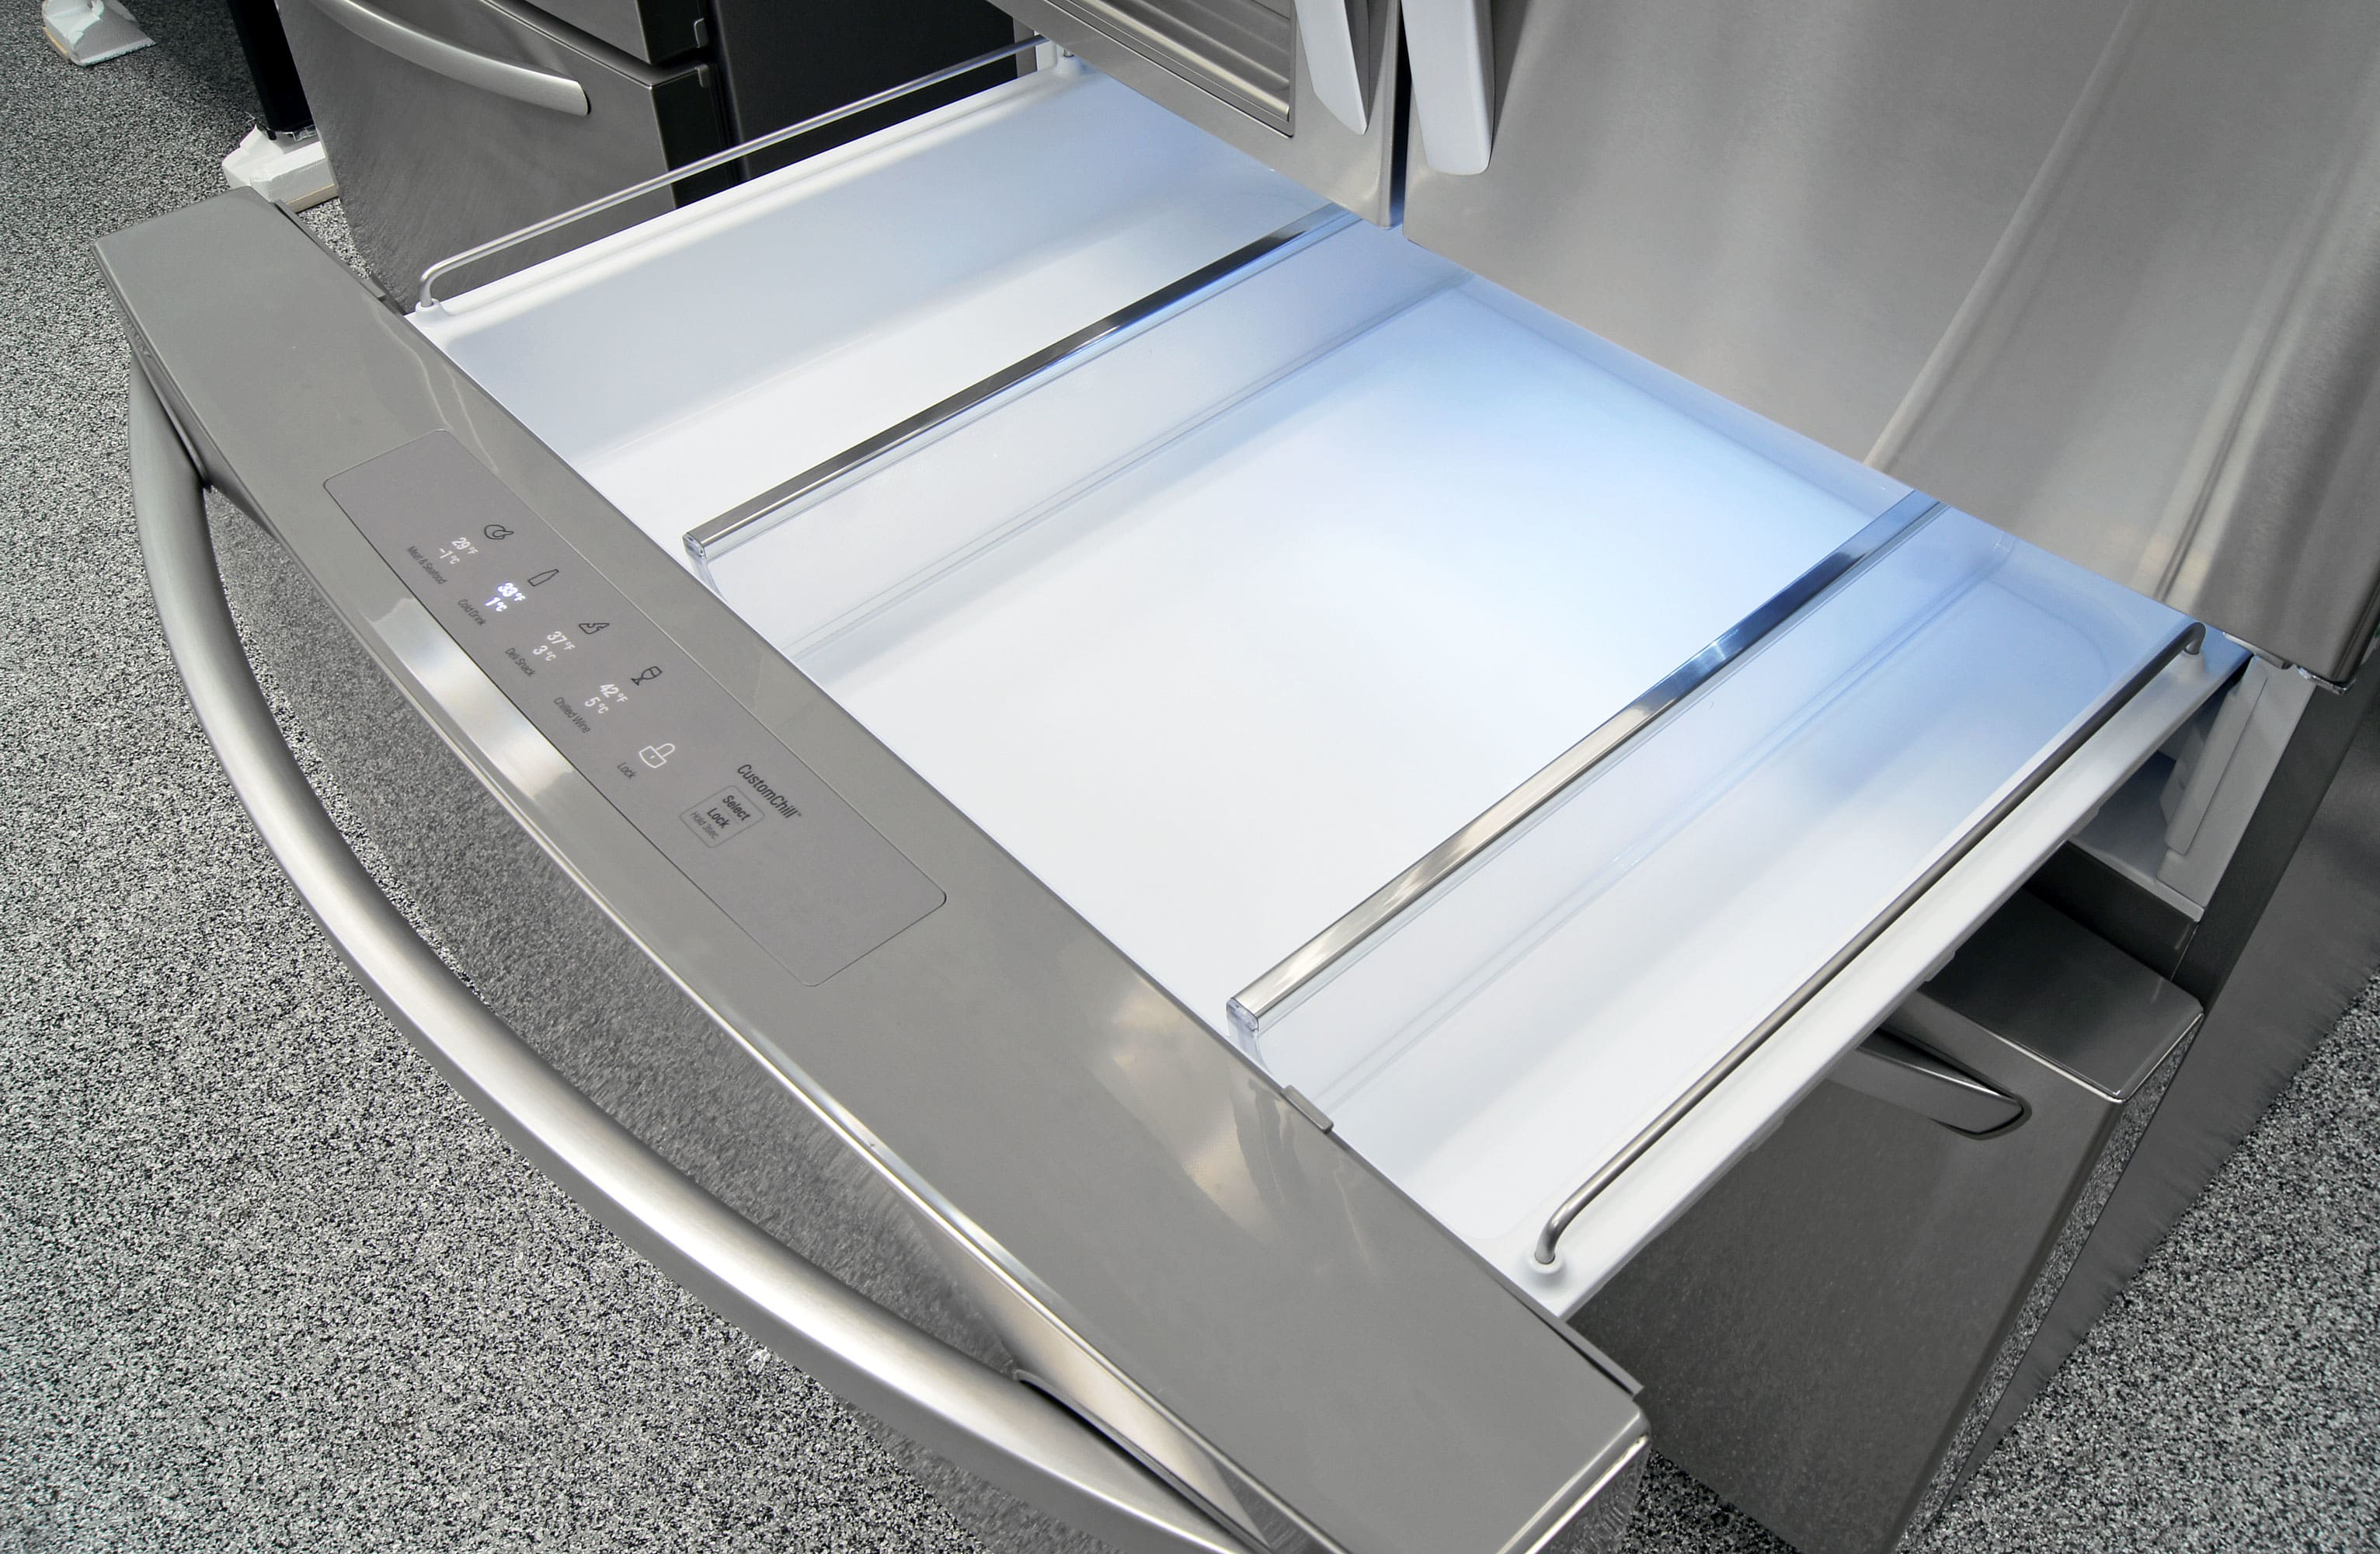 The LG LMXS30776S's central drawer comes with two removable partitions and four preset temperature levels.